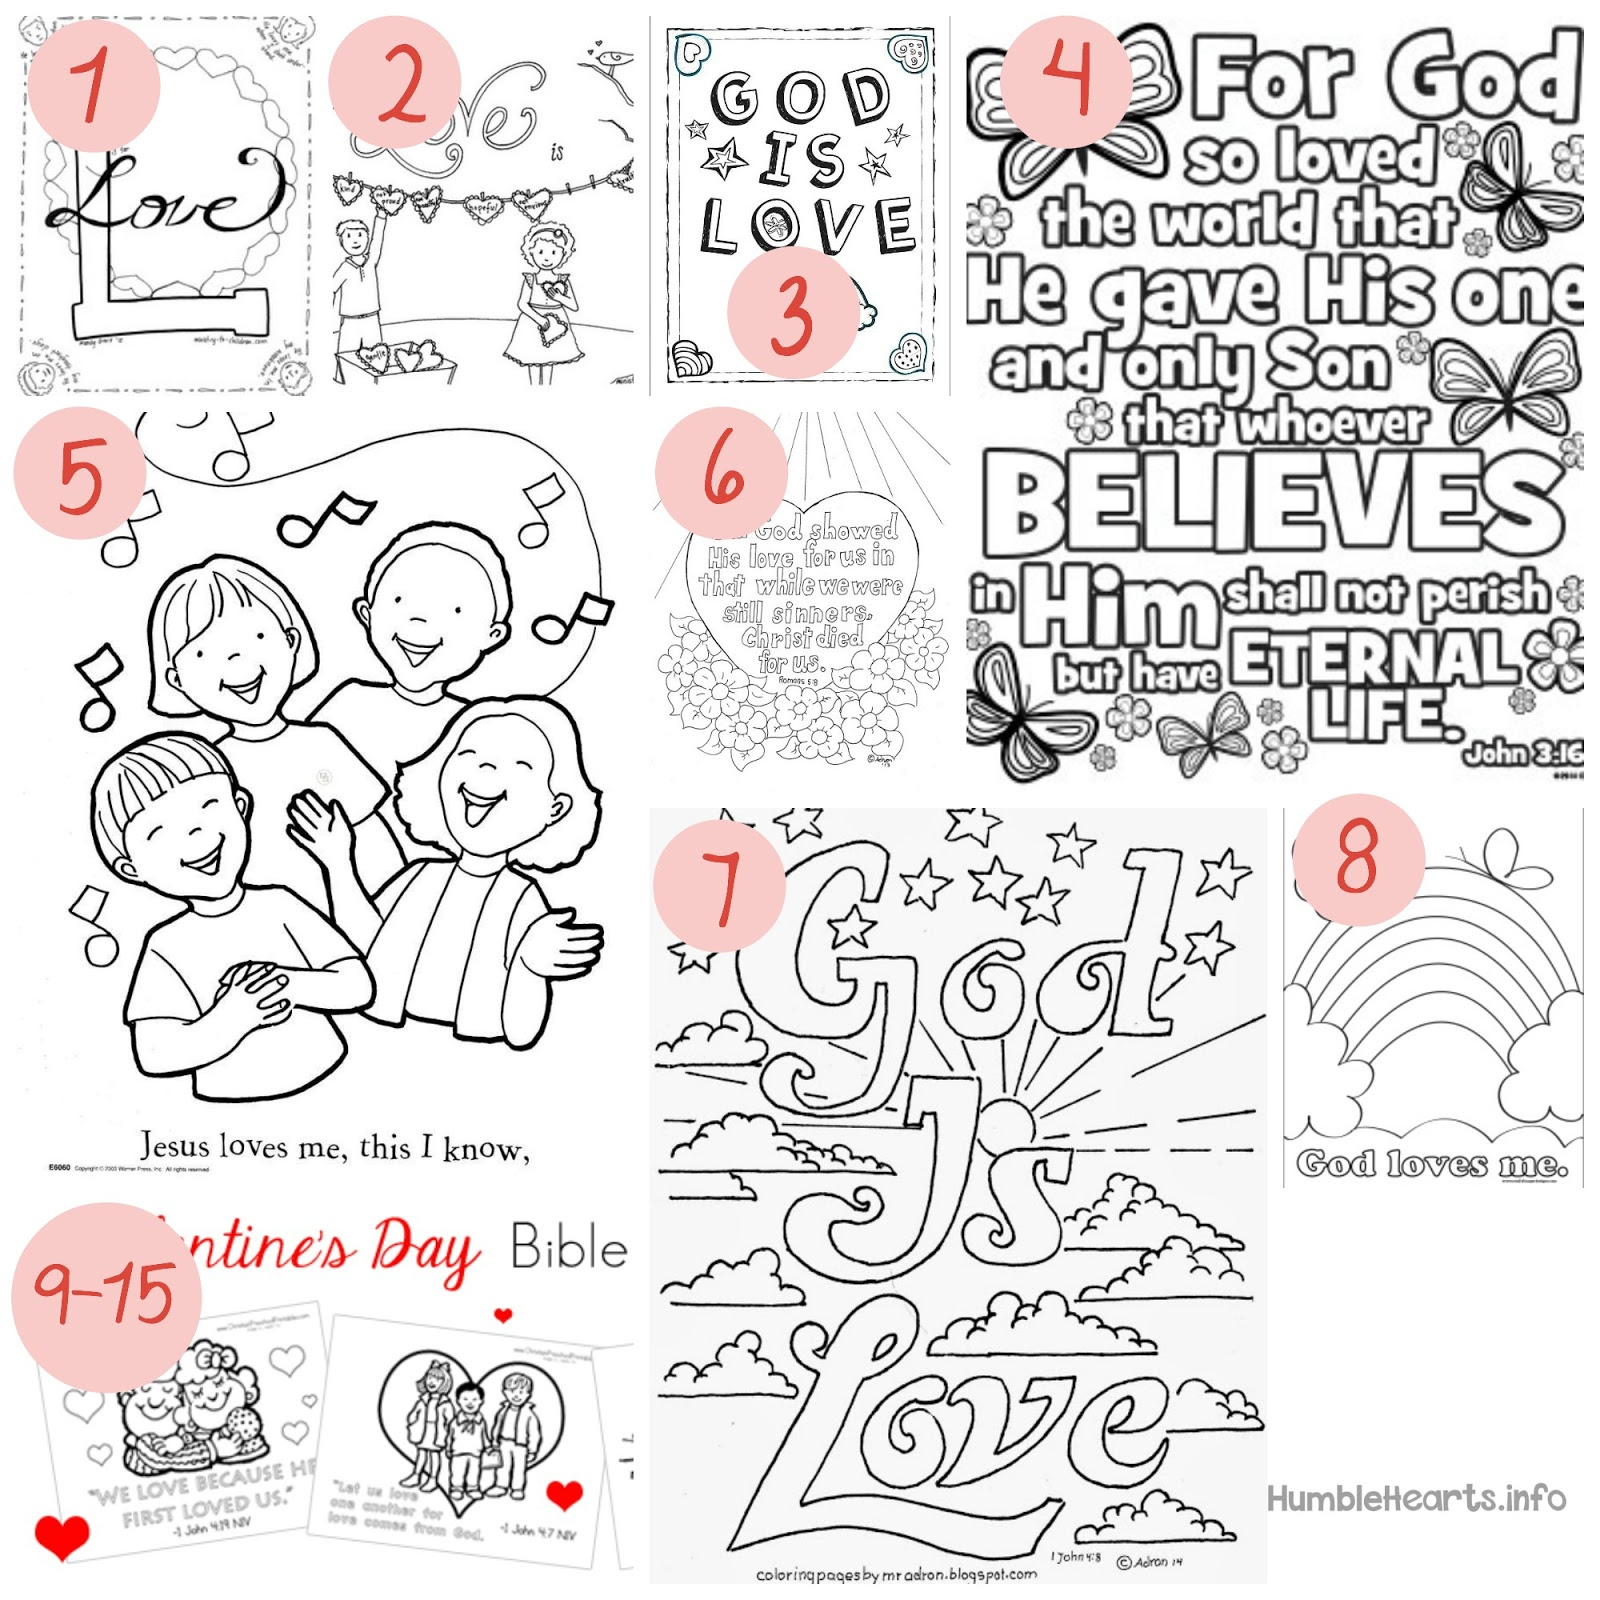 15 Coloring Pages About Gods Love Short And Sweet Humble Hearts - Jesus-love-coloring-pages